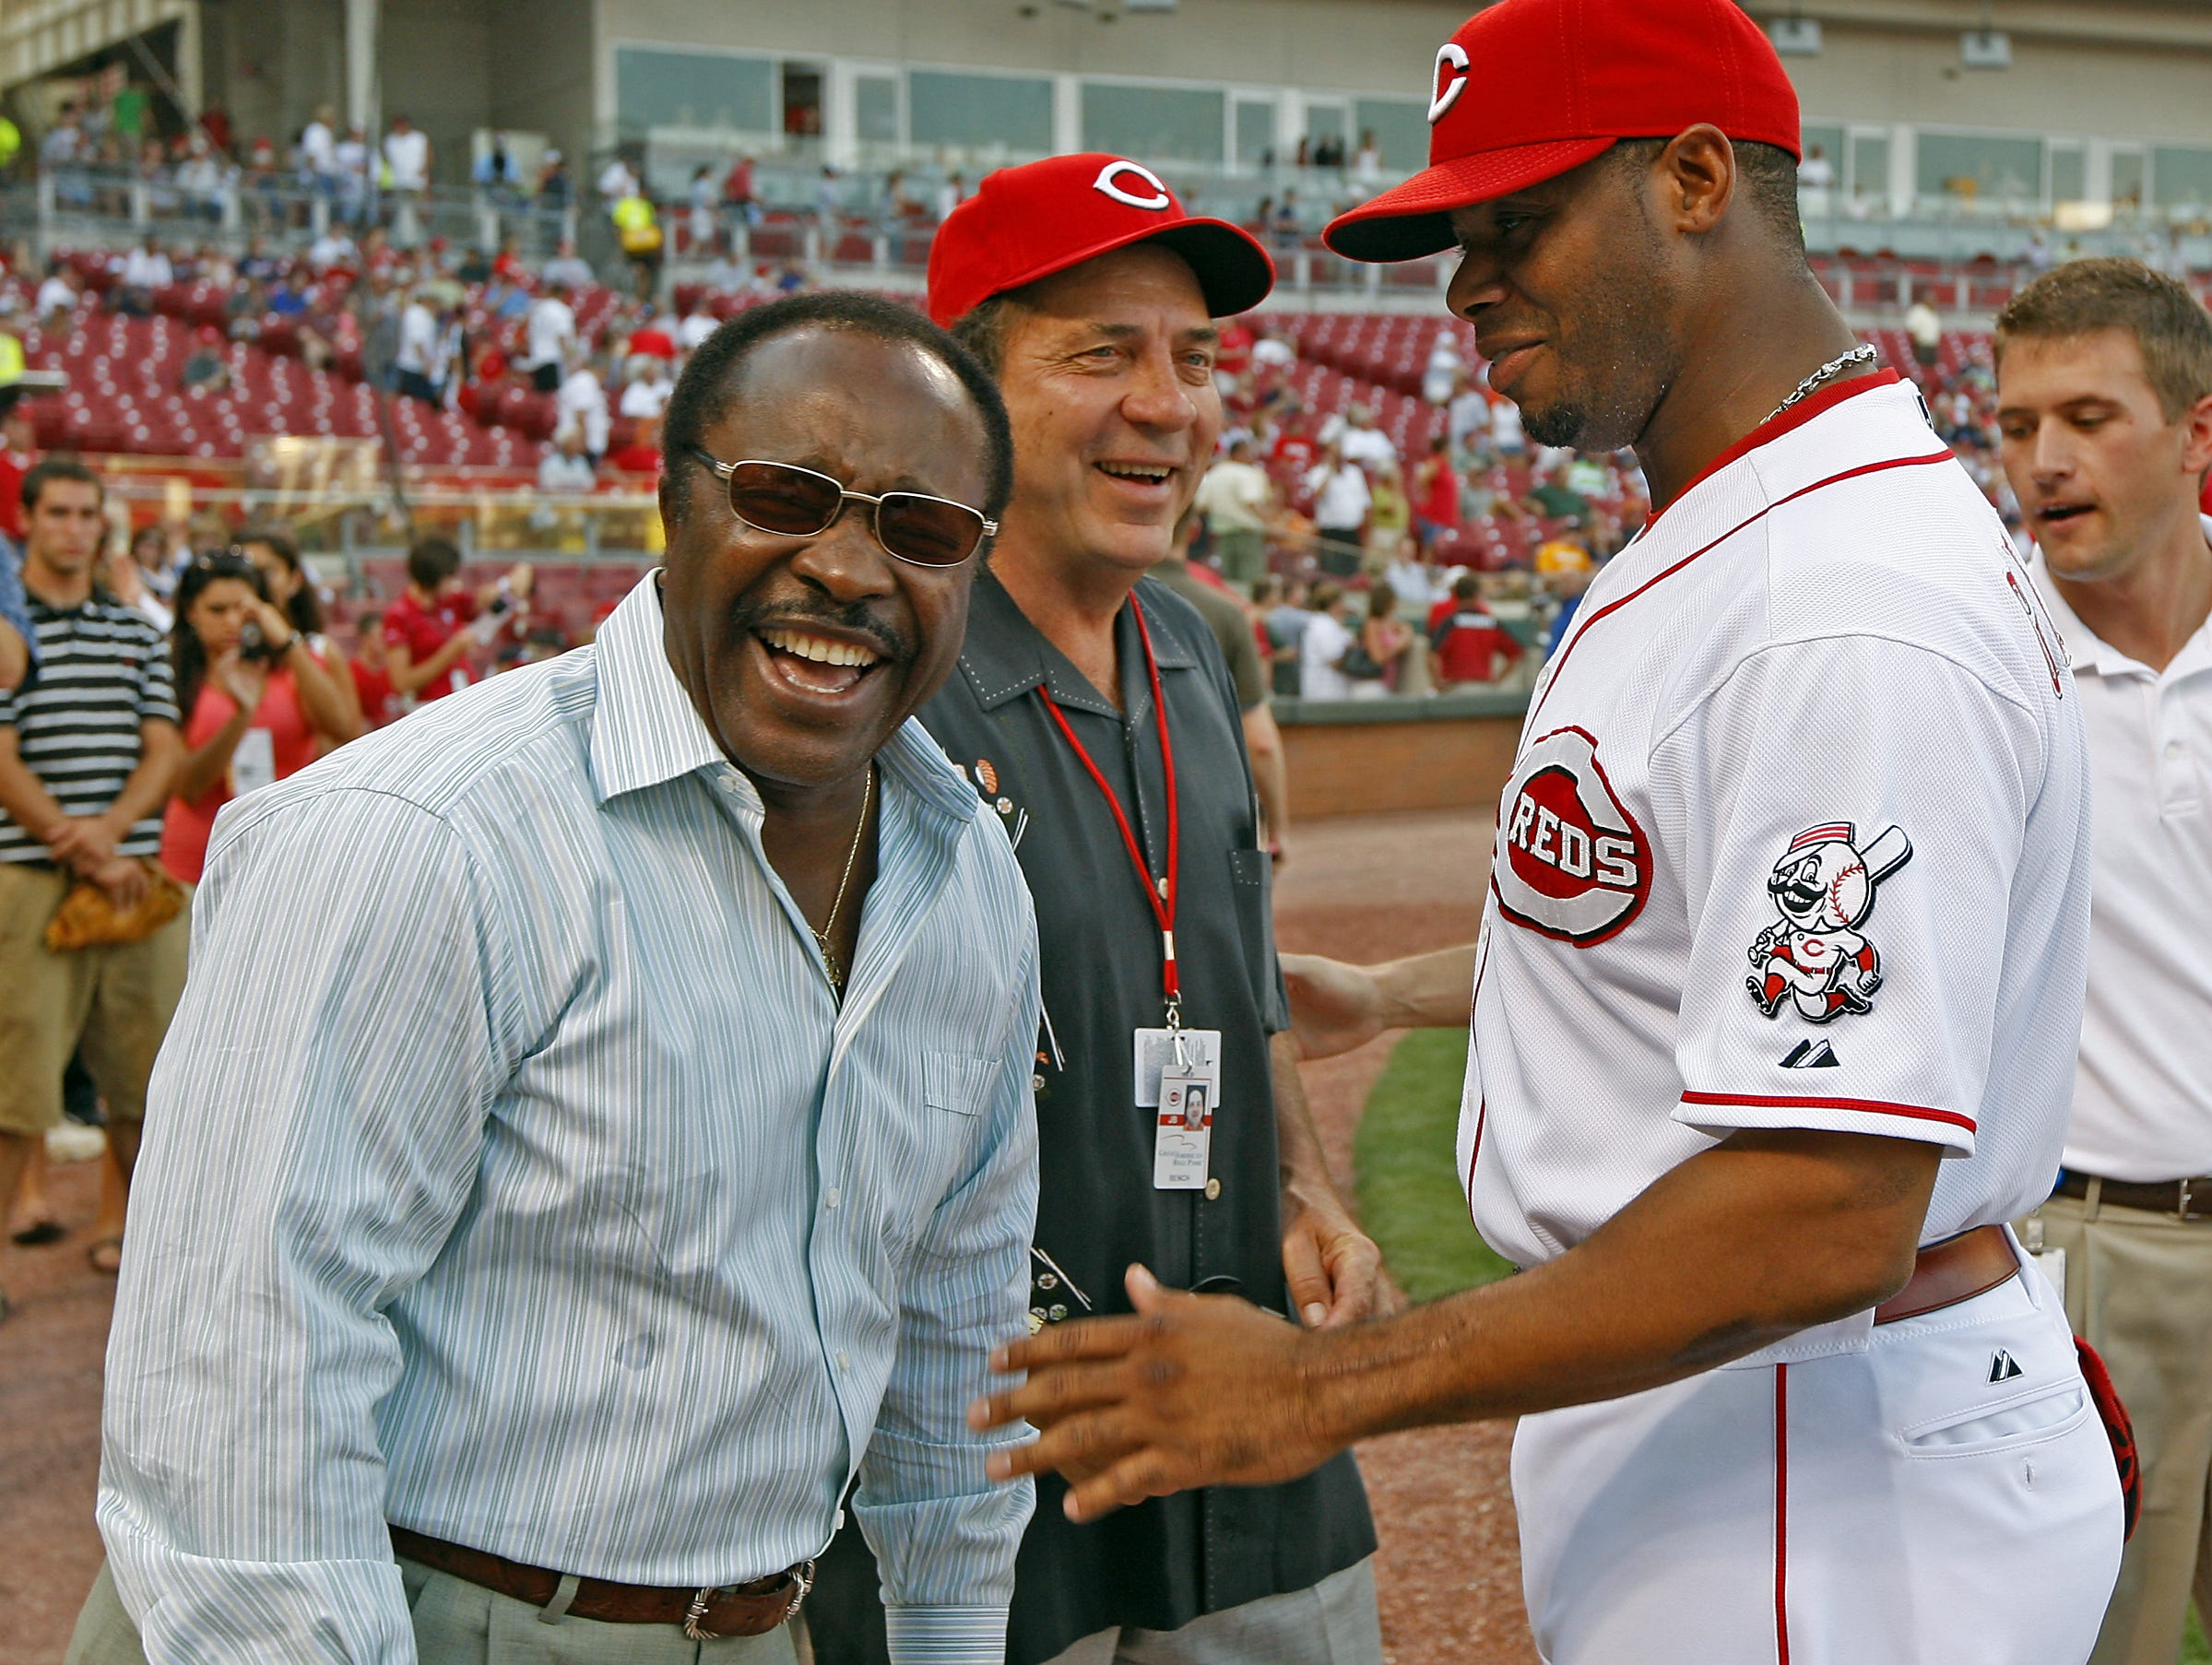 2007.08.23 REDS  SPORTS : The Cincinnati Reds (right) Ken Griffey Jr. chats with Reds Hall of Famer's Joe Morgan and Johnny Bench before they were presented to fans as named to the All-Time Rawlings Gold Glove Team before the game against the Atlanta Braves Thursday August 23, 2007. The Enquirer/Jeff Swinger